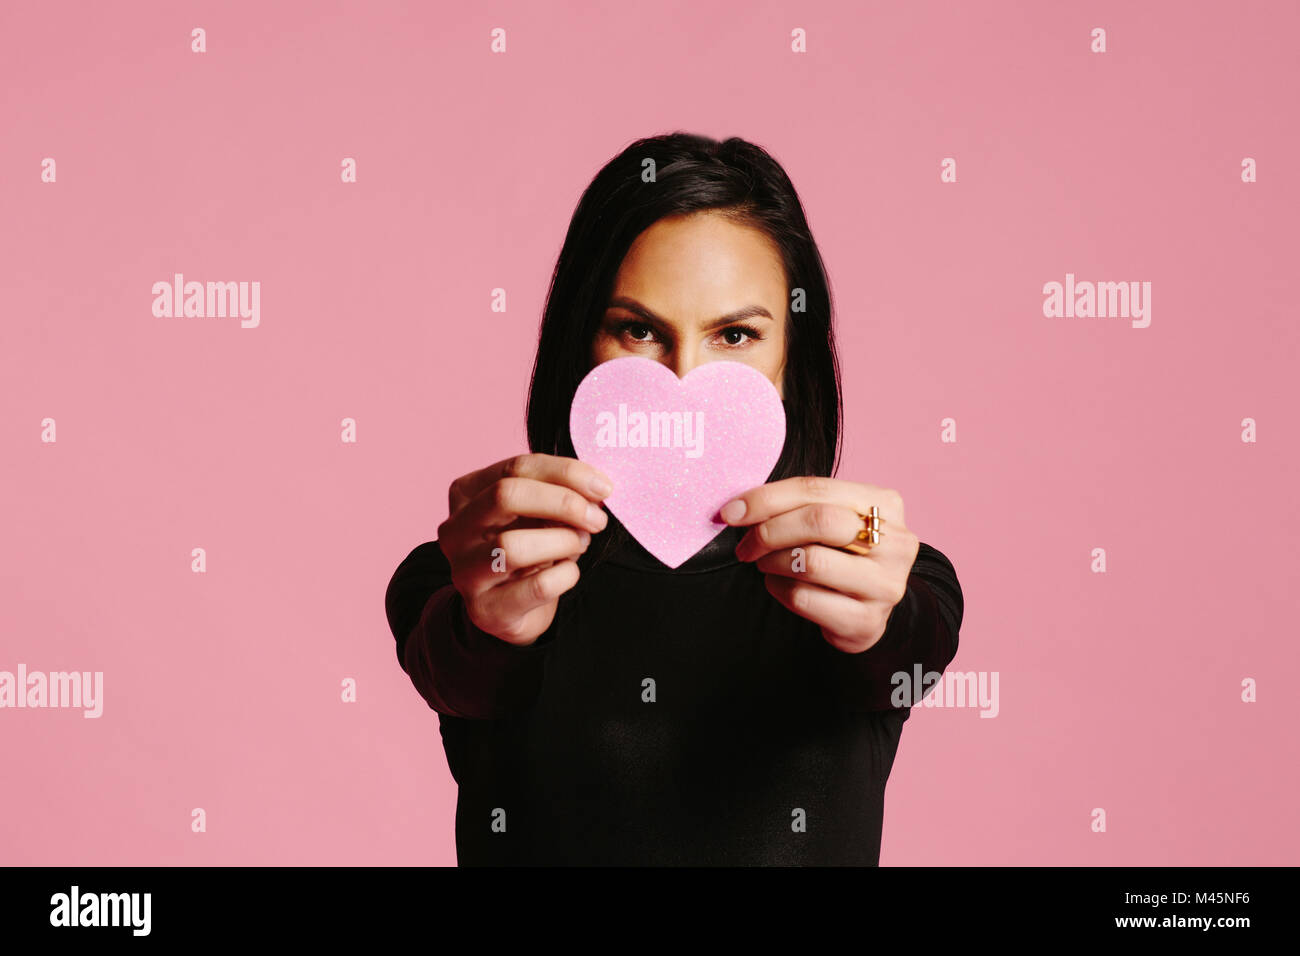 Woman in black showing pink heart covering half her face, be my valentine - Stock Image